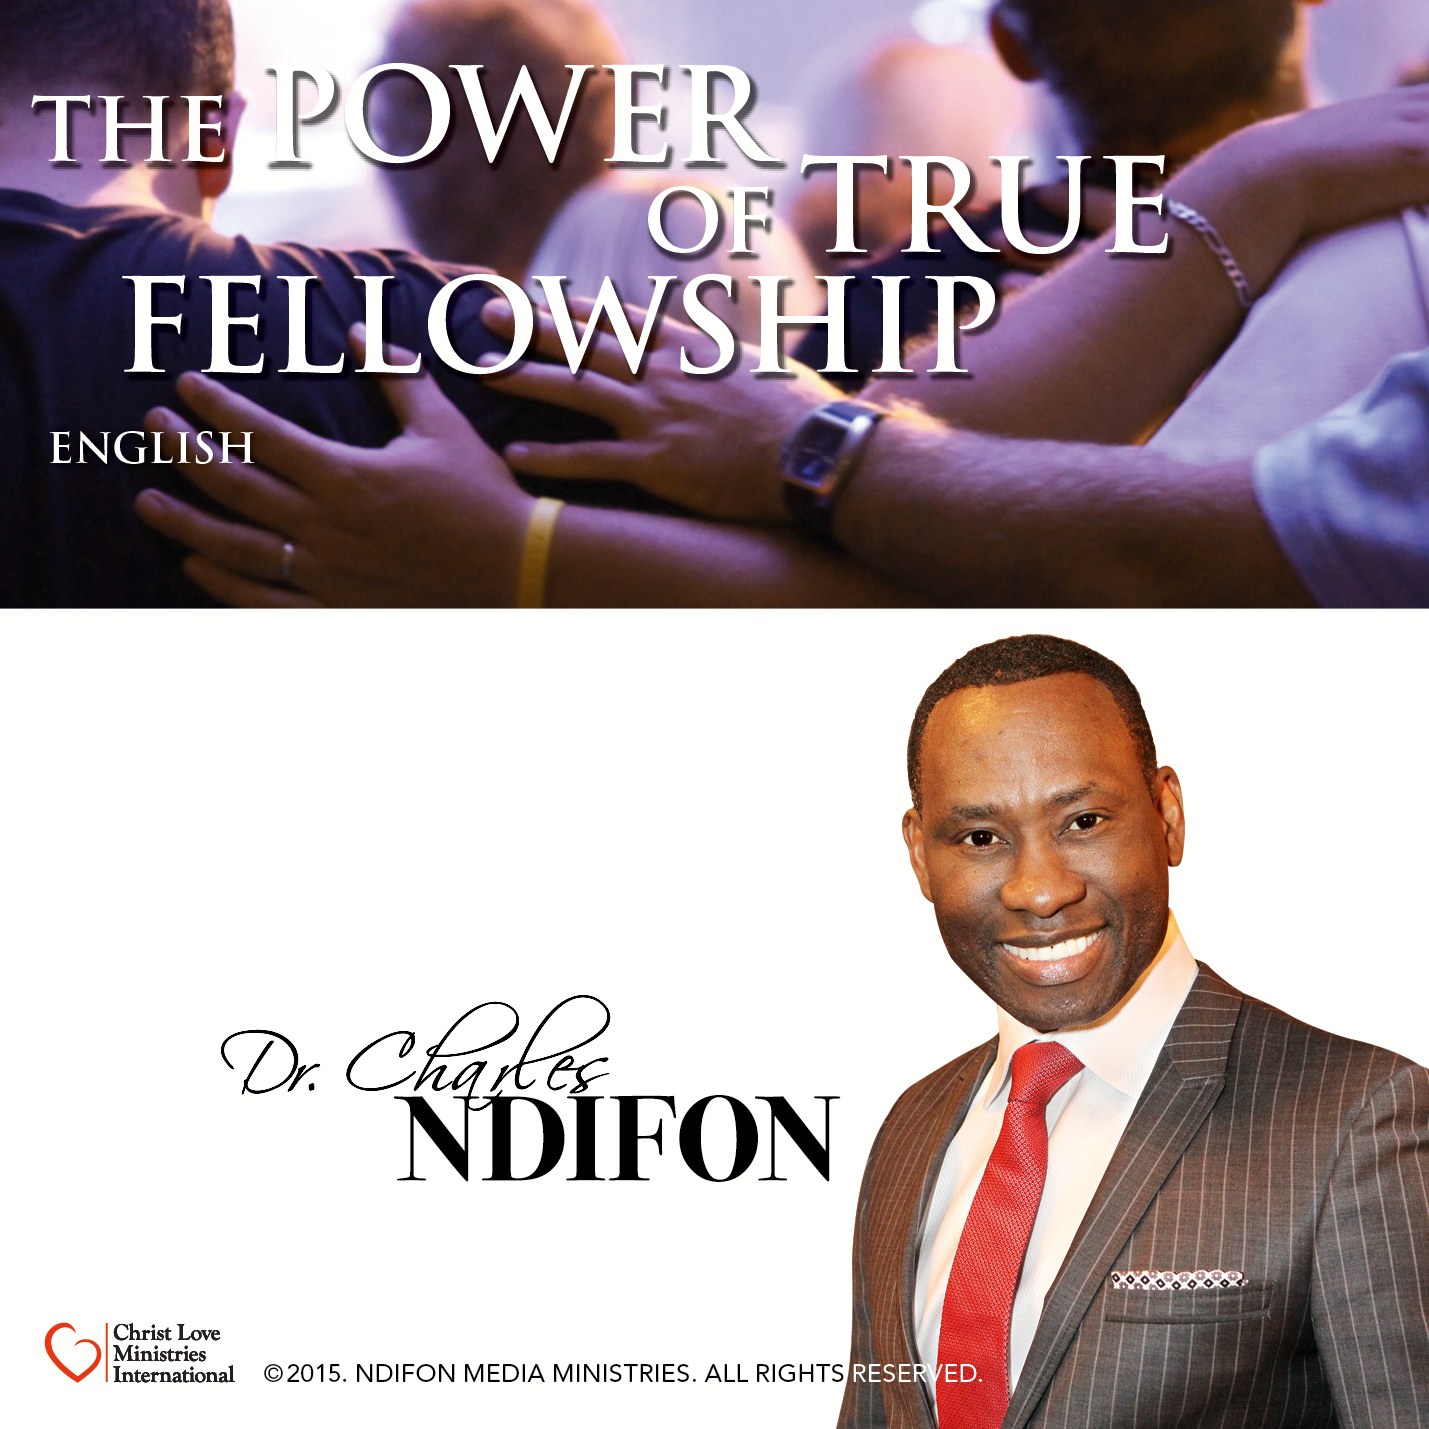 The Power of True Fellowship